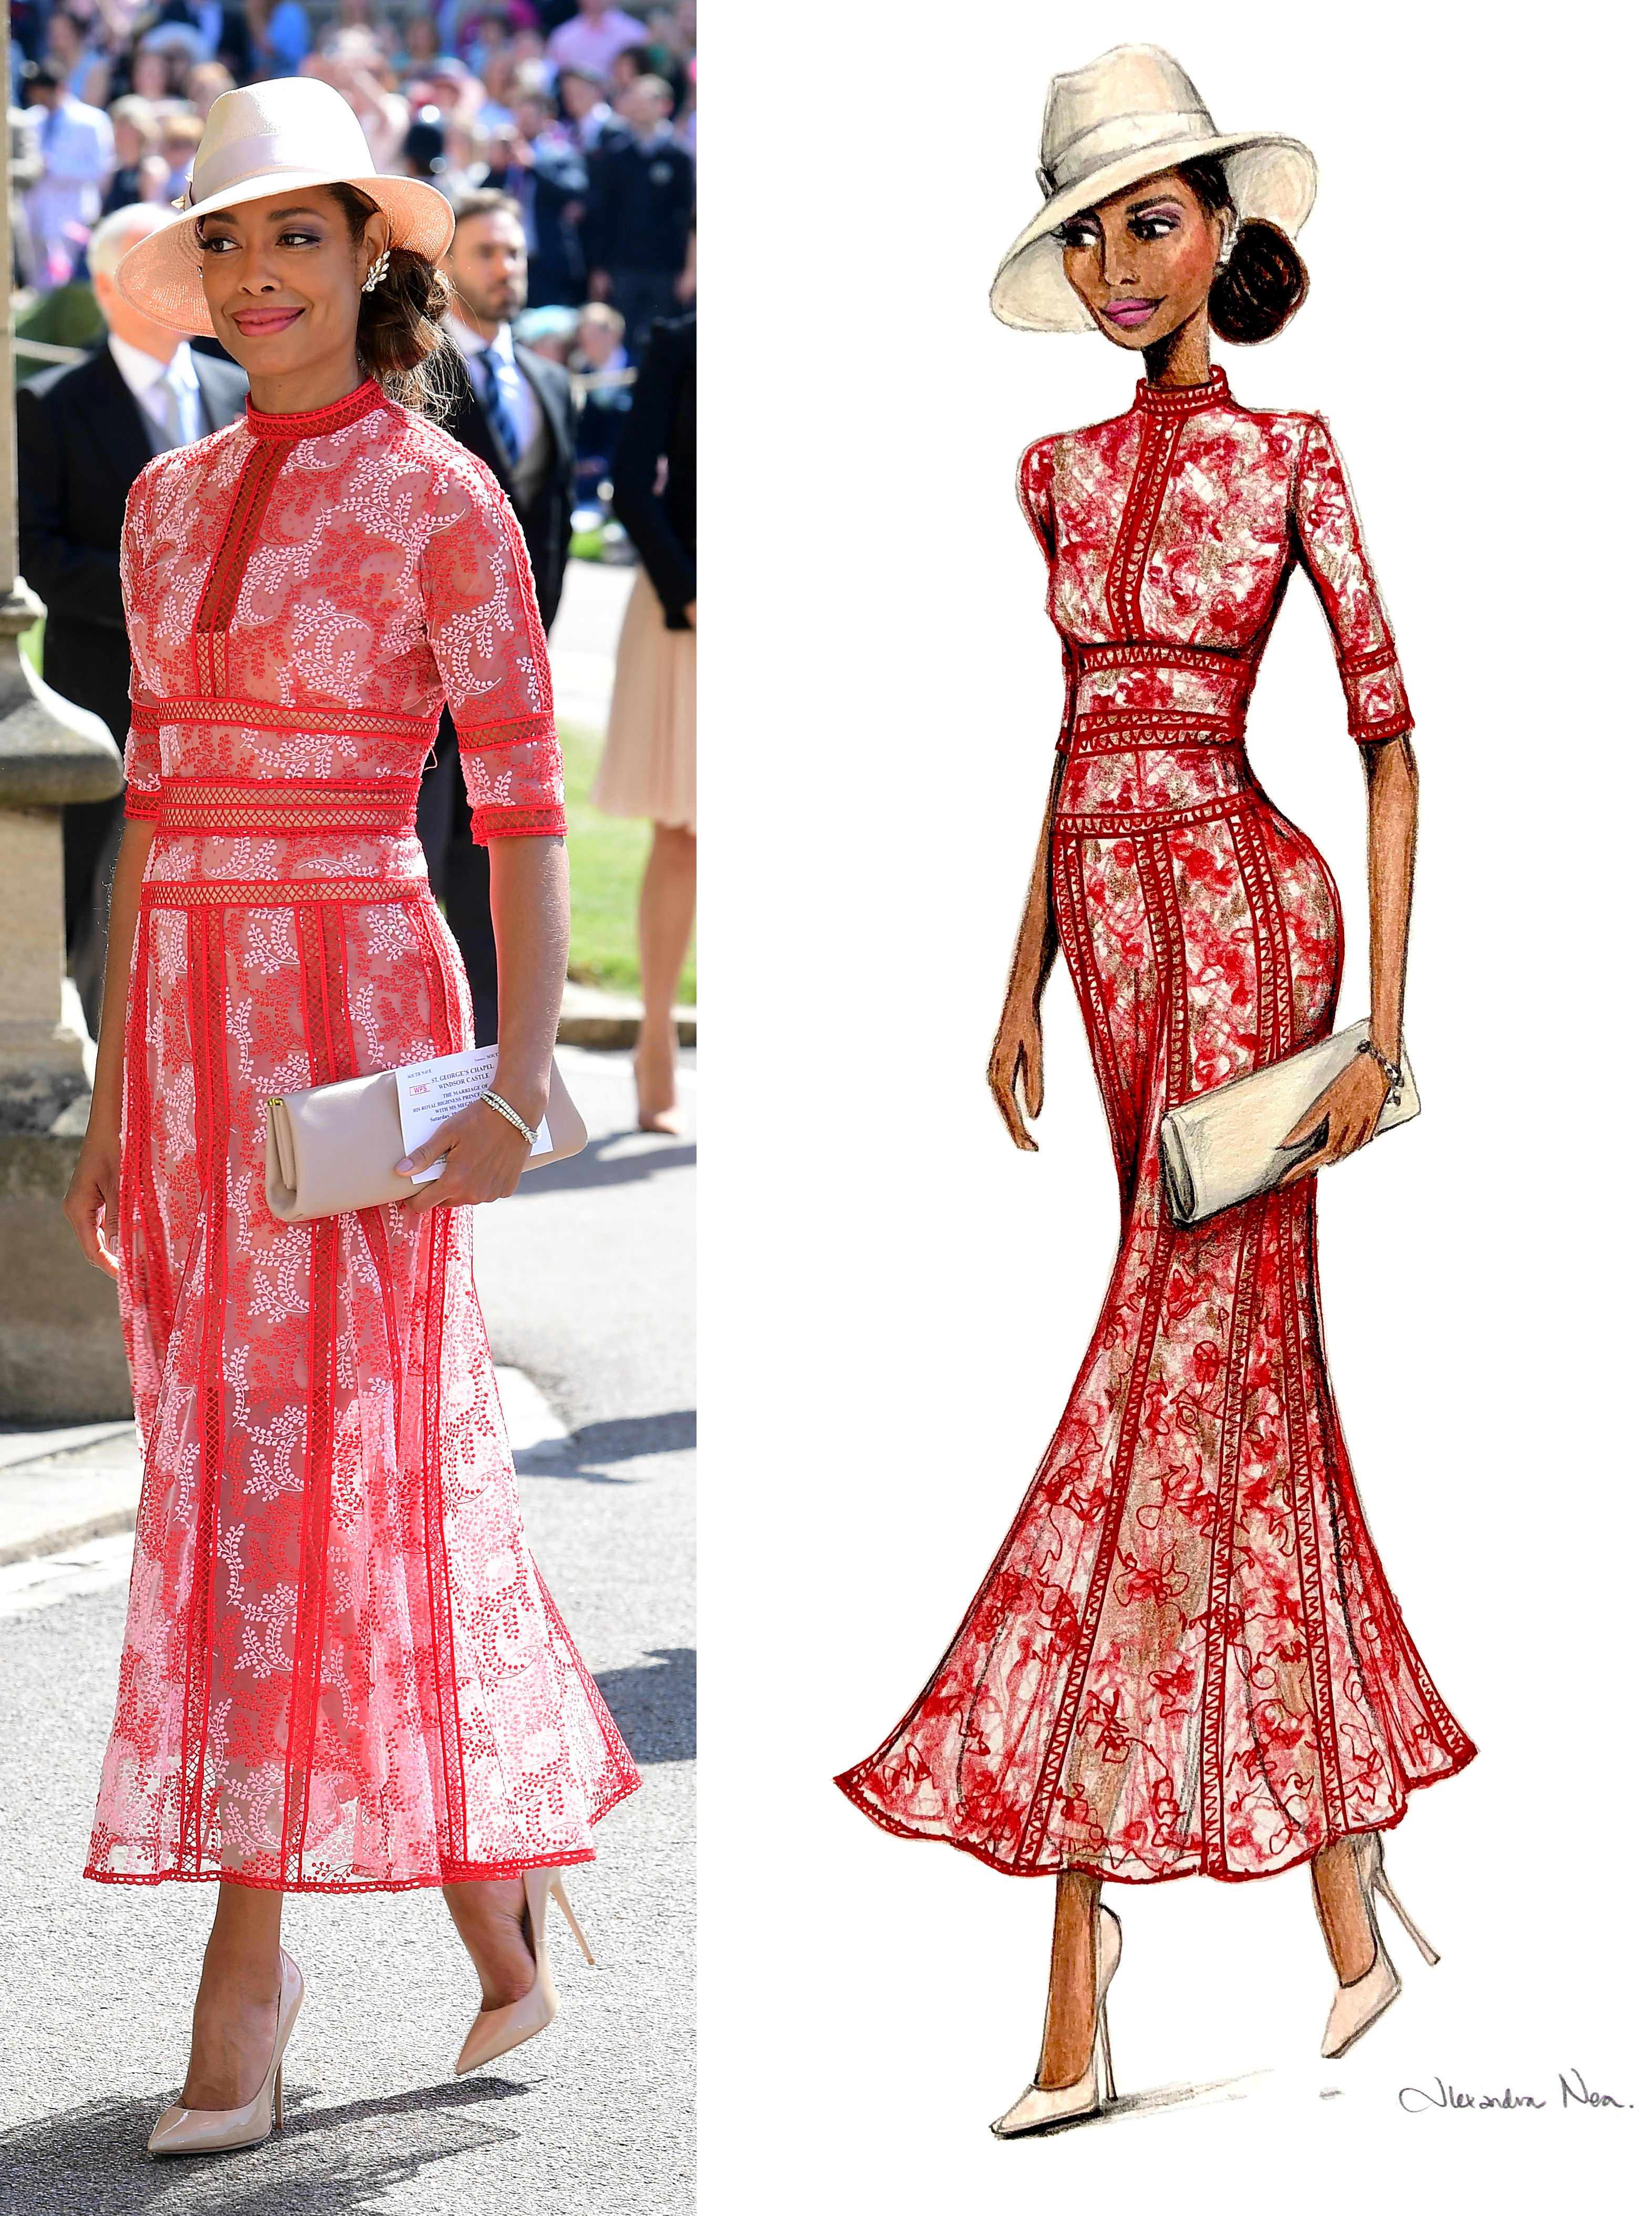 Gina Torres at the royal wedding and as recreated in a sketch by Alexandra Nea  (Ian West/PA/Alexandra Nea)